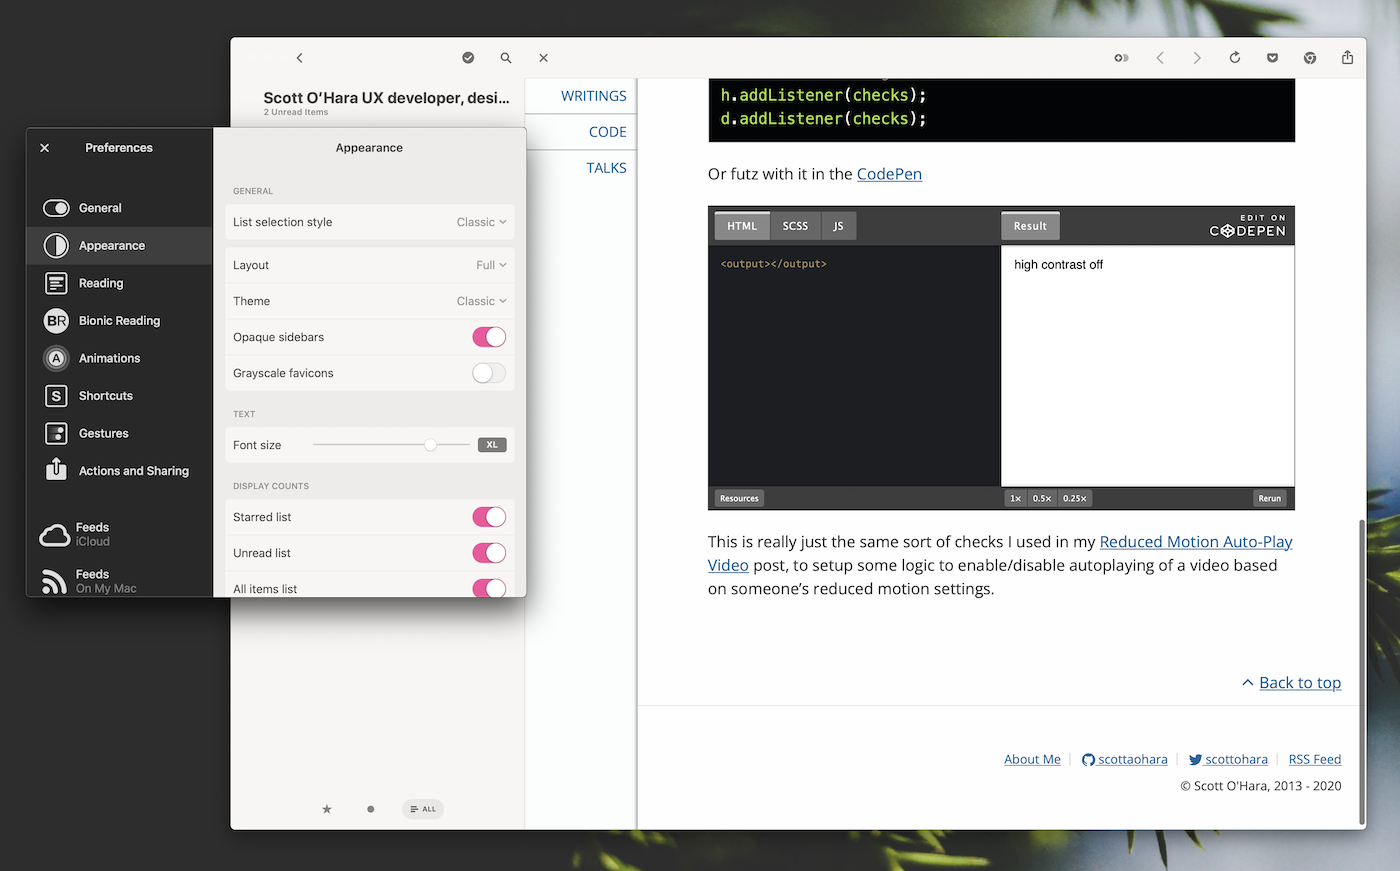 Screenshot of Scott's article opened in Reeder's in-app browser. The codepen result only says 'high contrast off', indicating that dark mode is not on. To the left of the image is Reeder's preferences pane open, showing the current theme set to 'Classic' (which is a light theme).